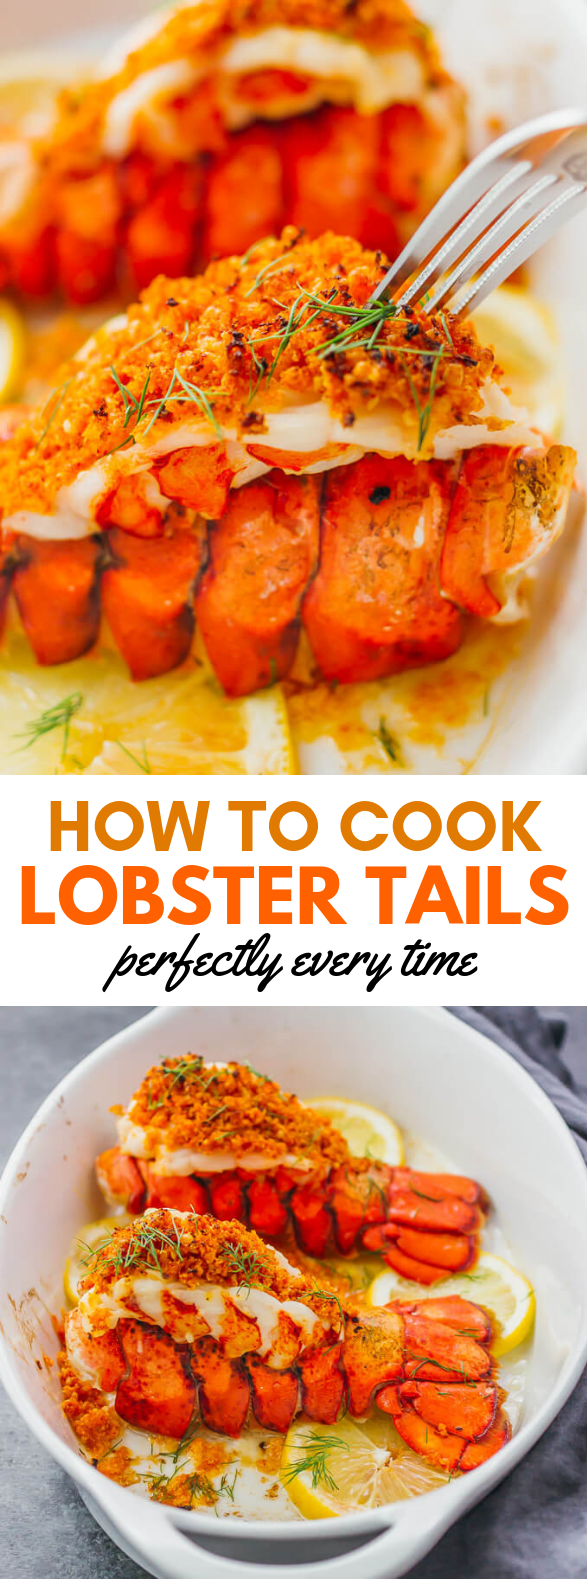 HOW TO COOK LOBSTER TAILS PERFECTLY EACH TIME #dinner #lunch